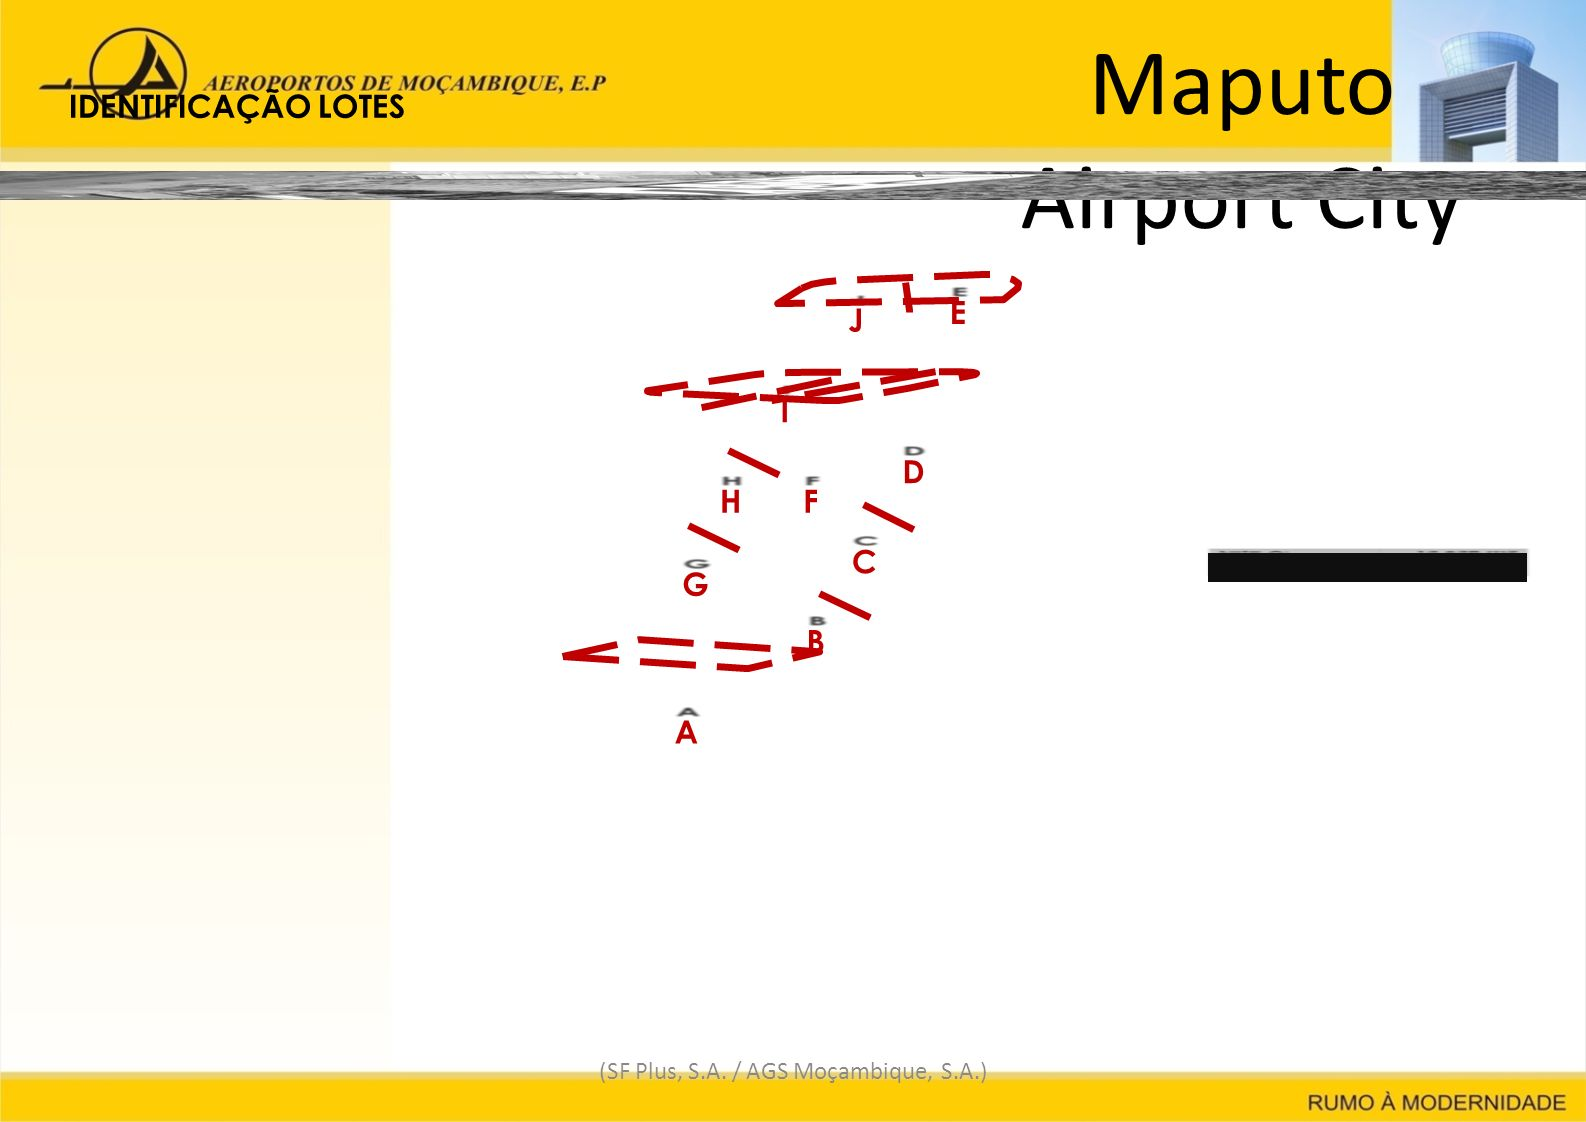 Maputo Airport City (SF Plus, S.A. / AGS Moçambique, S.A.) IDENTIFICAÇÃO LOTES Lote A: Lote B: Lote C: Lote D: Lote E: Lote F: Lote G: Lote H: Lote I: